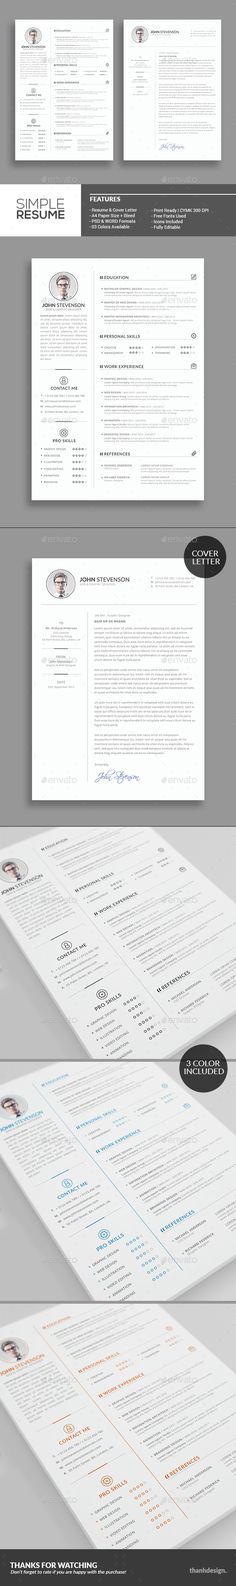 Resume Template, Graphics and Fonts - resume download